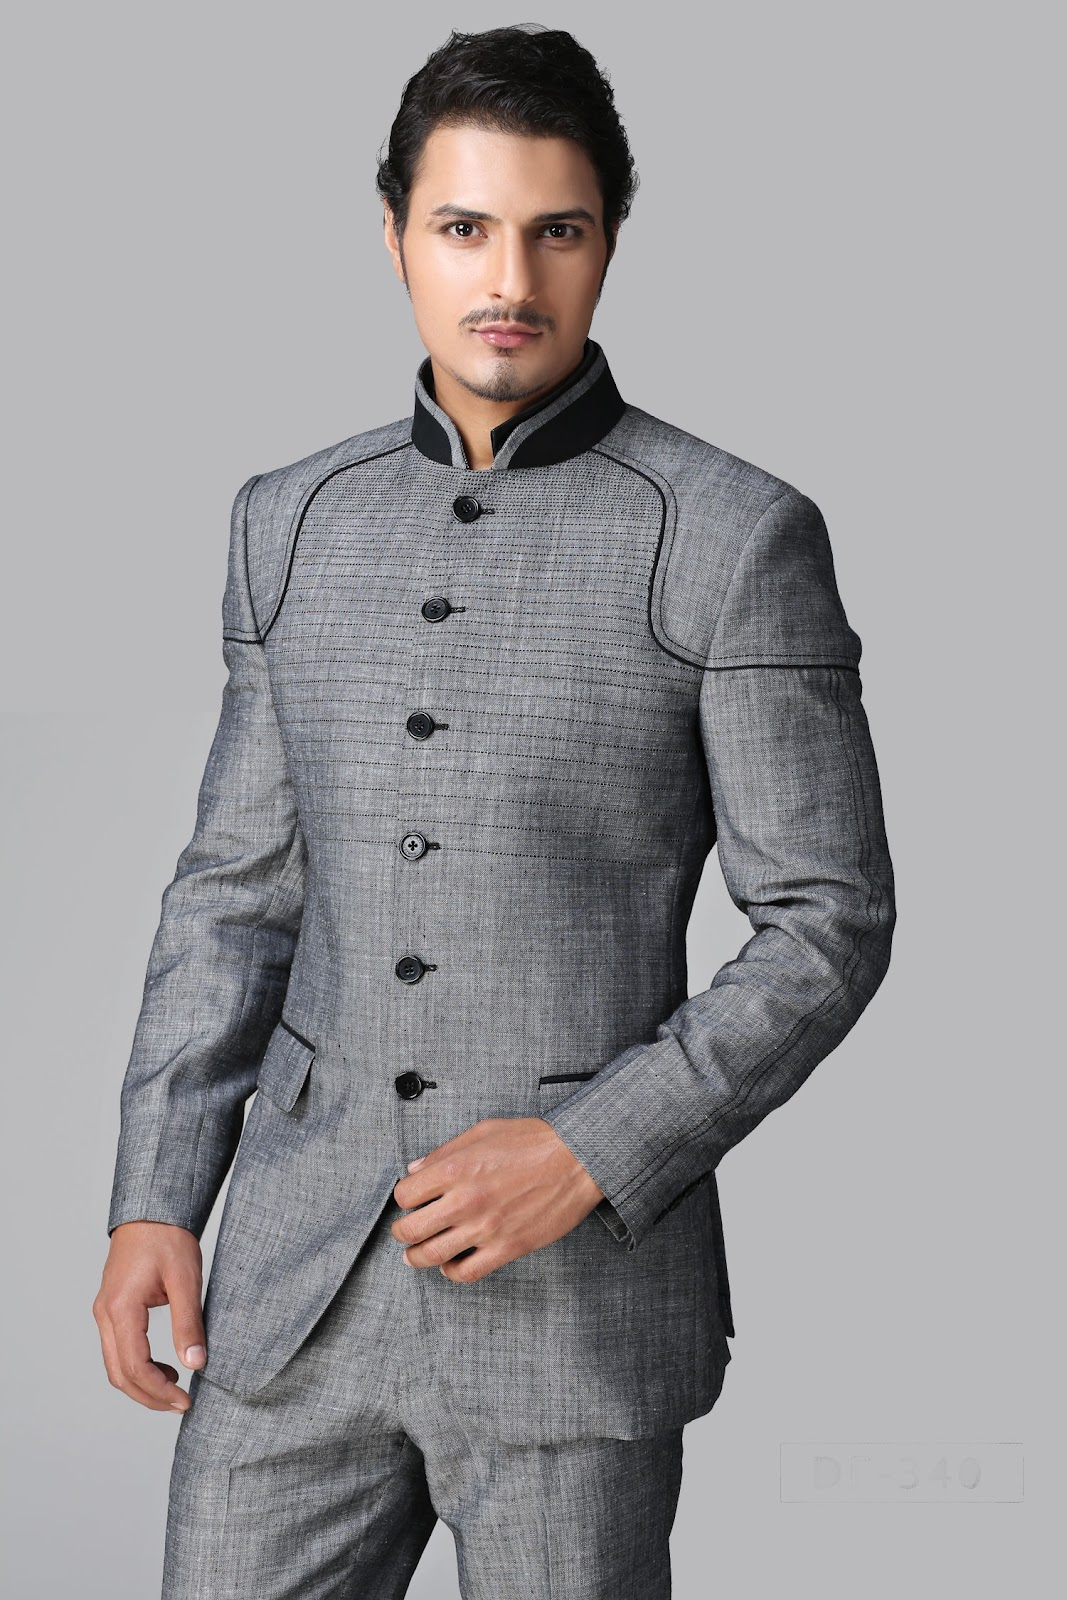 Modern 3 Piece Suits For Men Three Piece Suit Indian Office Wear News Fashion Styles